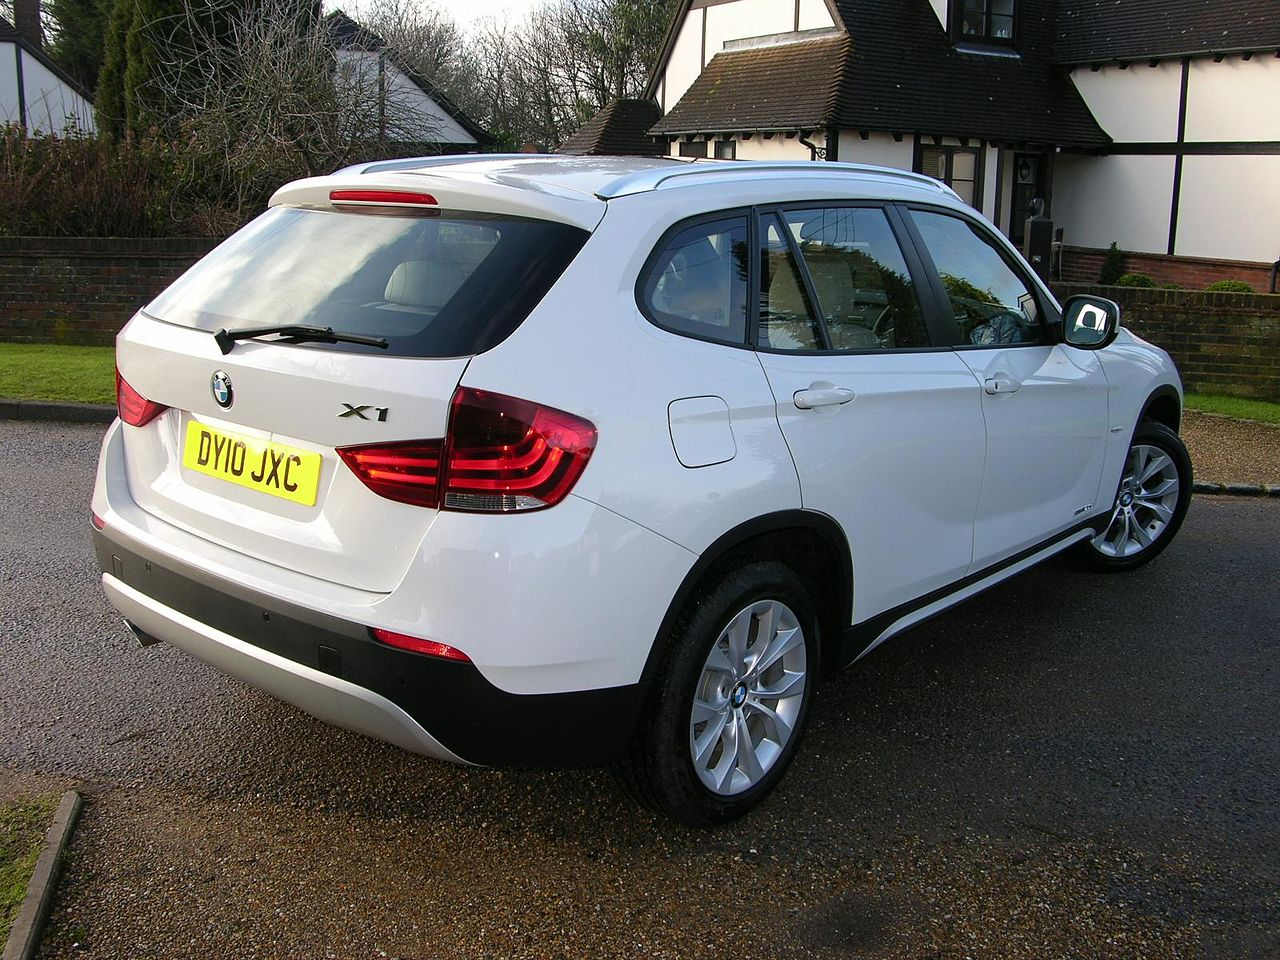 file 2010 bmw x1 sdrive se flickr the car spy 19 jpg wikimedia commons. Black Bedroom Furniture Sets. Home Design Ideas